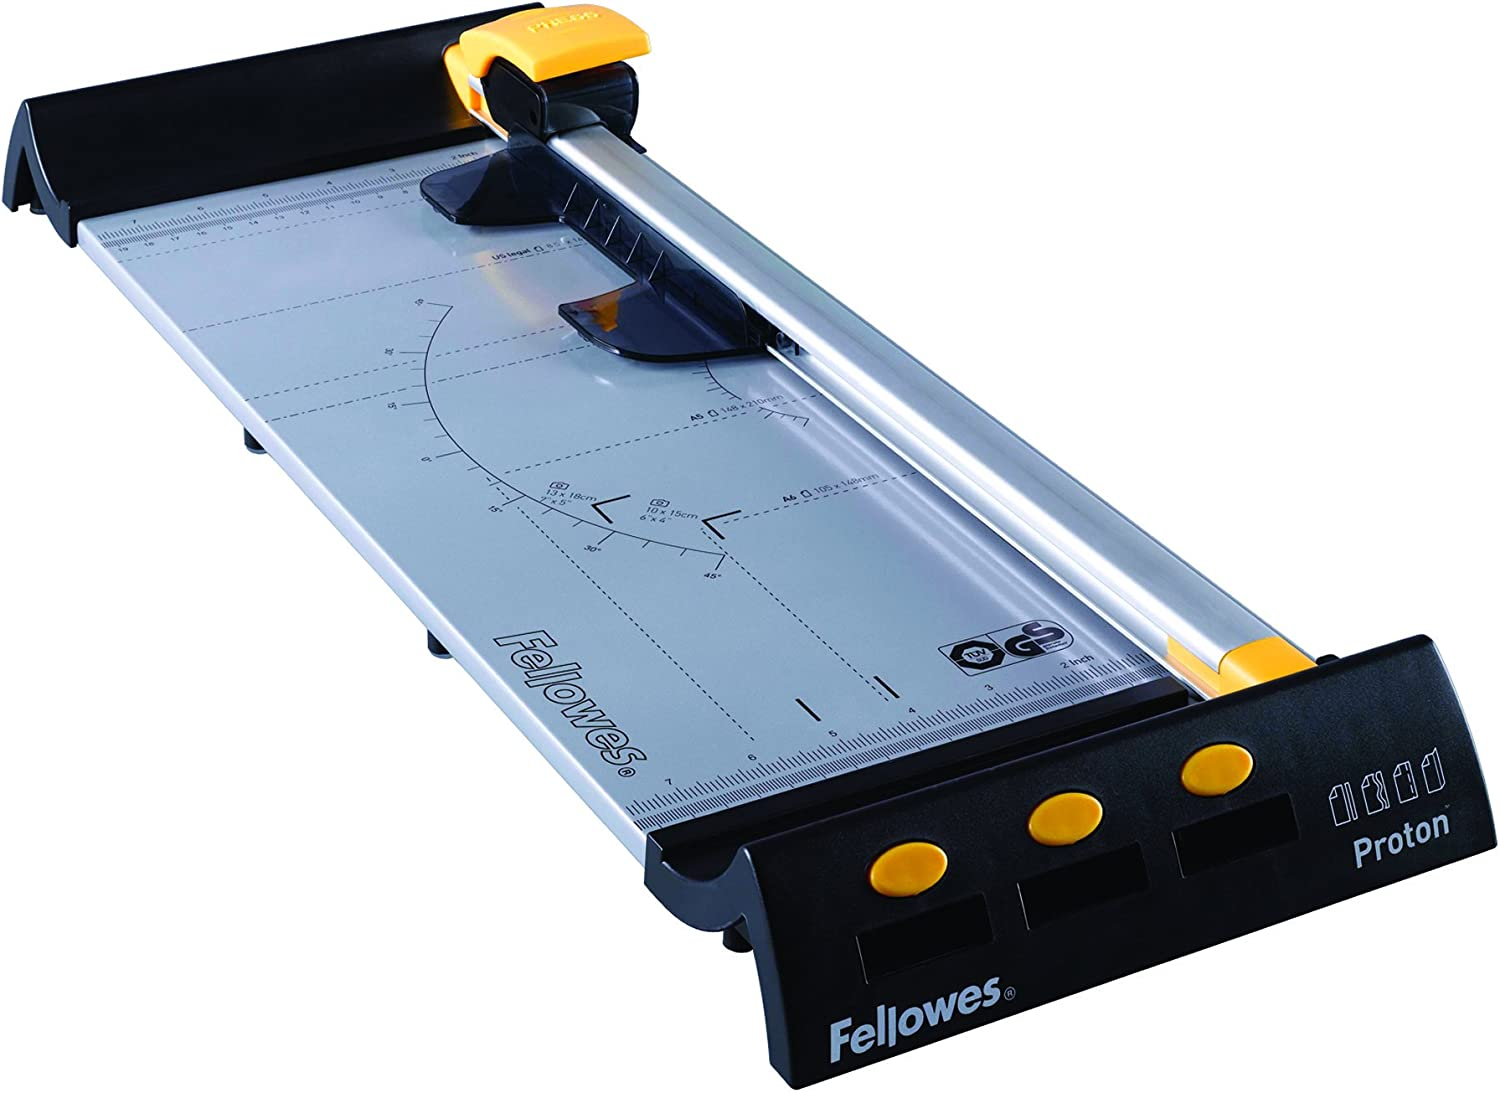 Fellowes Proton We OFFer at cheap prices 5410301 Trimmer - 1 45 s x Chicago Mall Blade 10Sheet Cuts